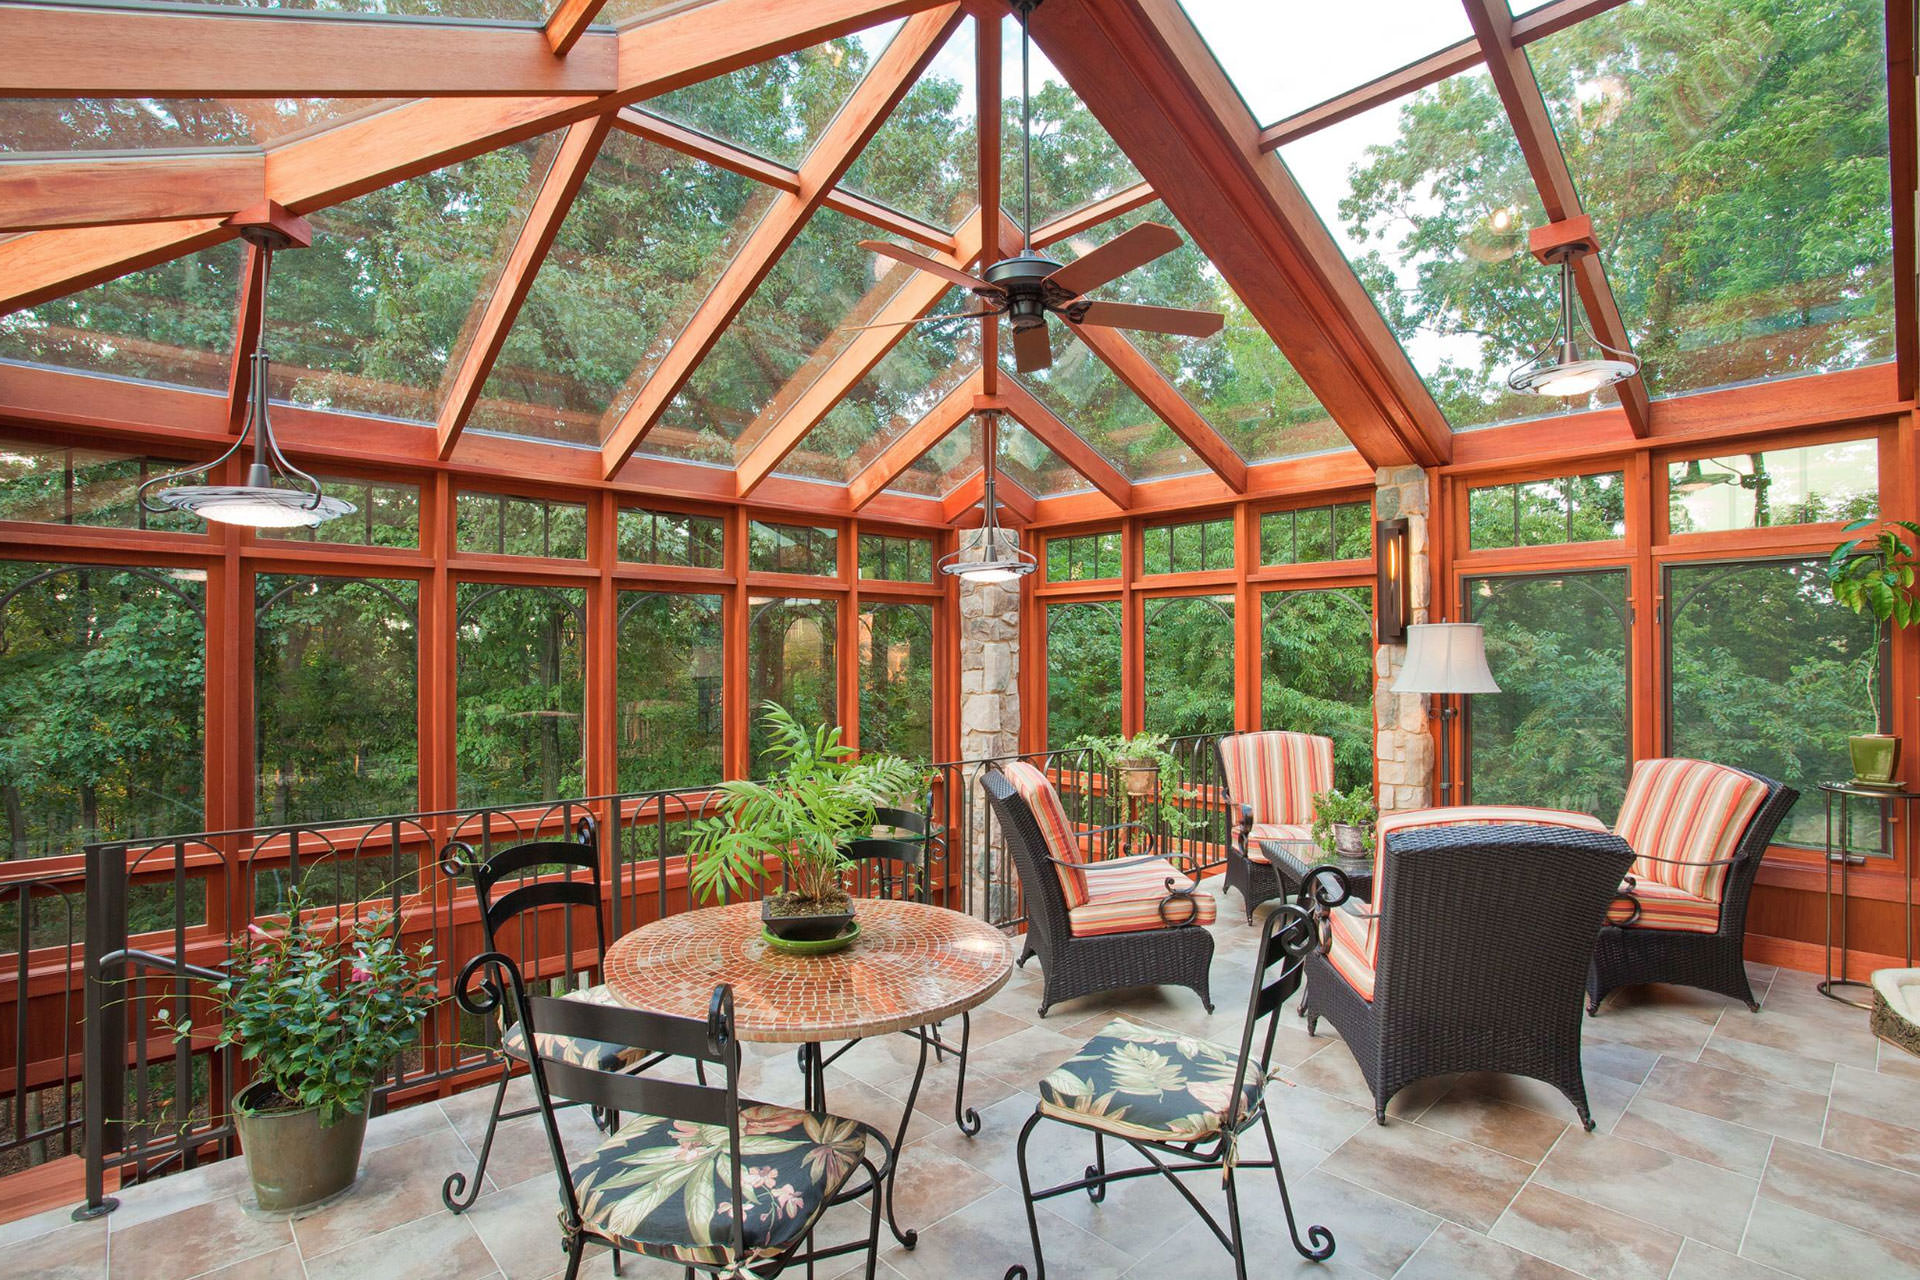 Planning An Outdoor Space - Glass Expanse